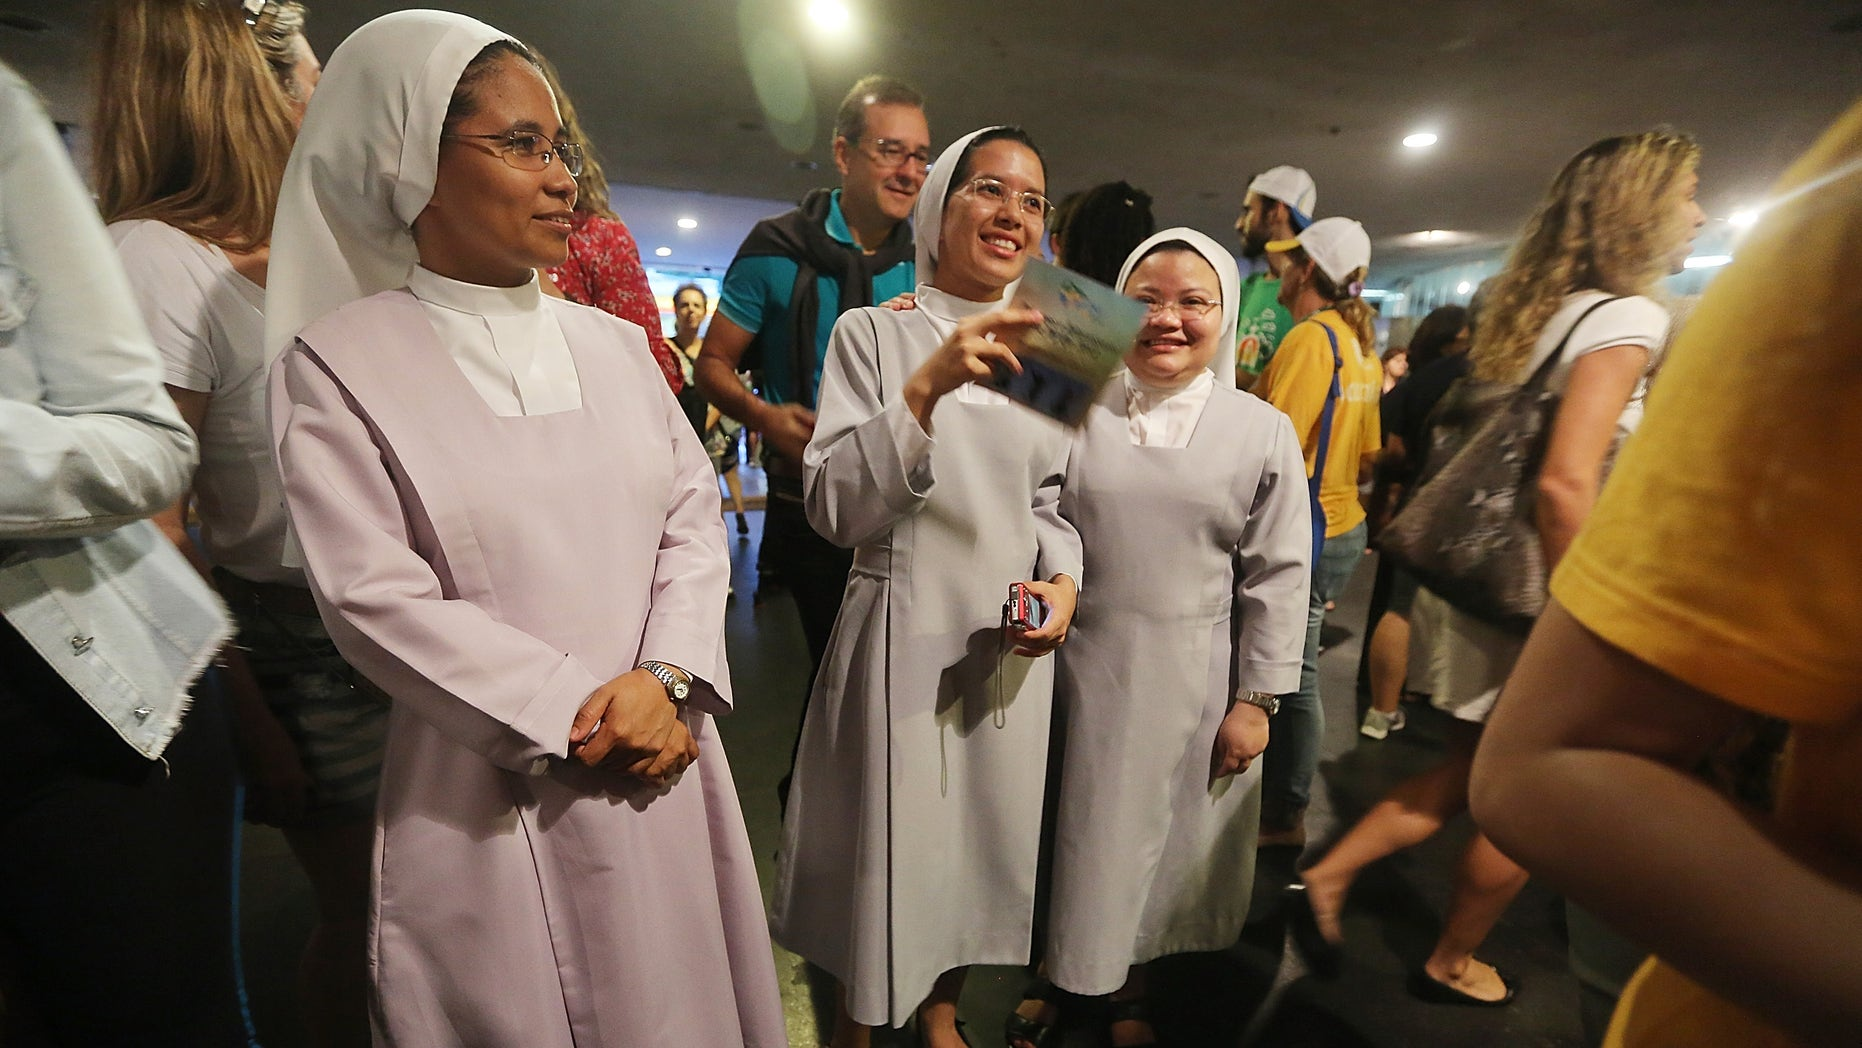 RIO DE JANEIRO, BRAZIL - JULY 21: Nuns stand outside a mass in the Arpoador neighborhood on July 21, 2013 in Rio de Janeiro, Brazil. More than 1.5 million pilgrims are expected to join Pope Francis for his visit to the Catholic Church's World Youth Day celebrations. Pope Francis is scheduled to visit Brazil from July 22 to 28.  (Photo by Mario Tama/Getty Images)